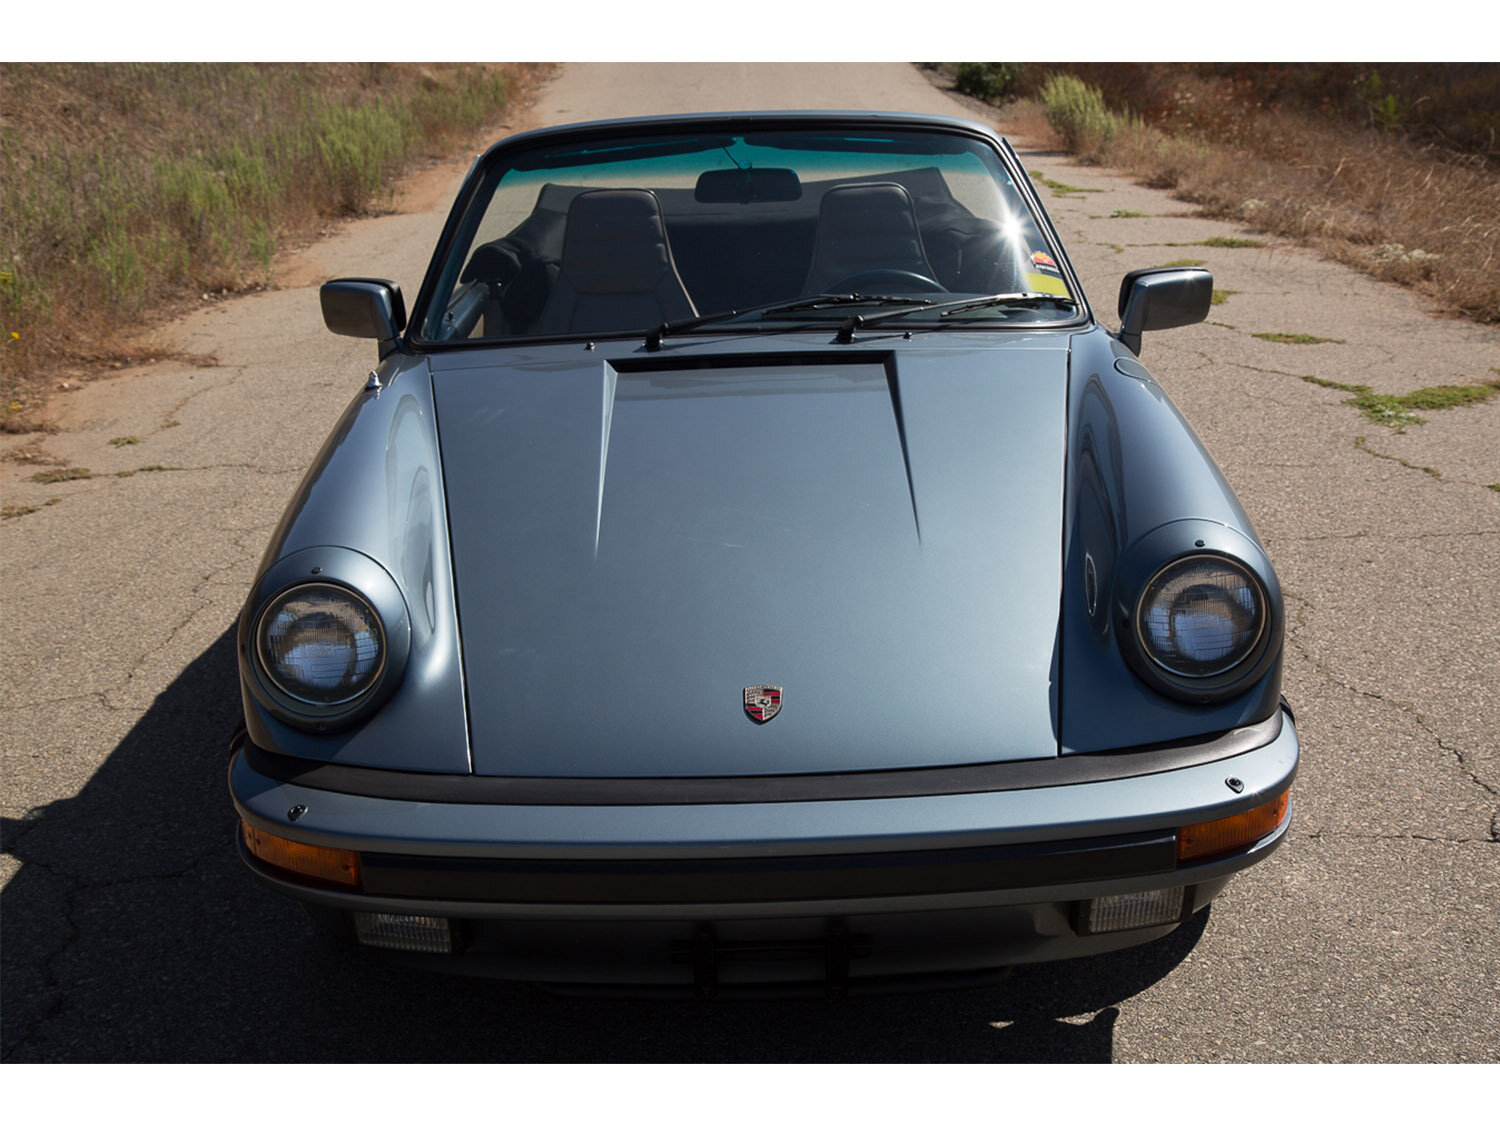 1984-carrera-cabriolet-slate-blue-911-sc-for-sale-makellos-classics_0001s_0000s_0036_1B7A6587.jpg